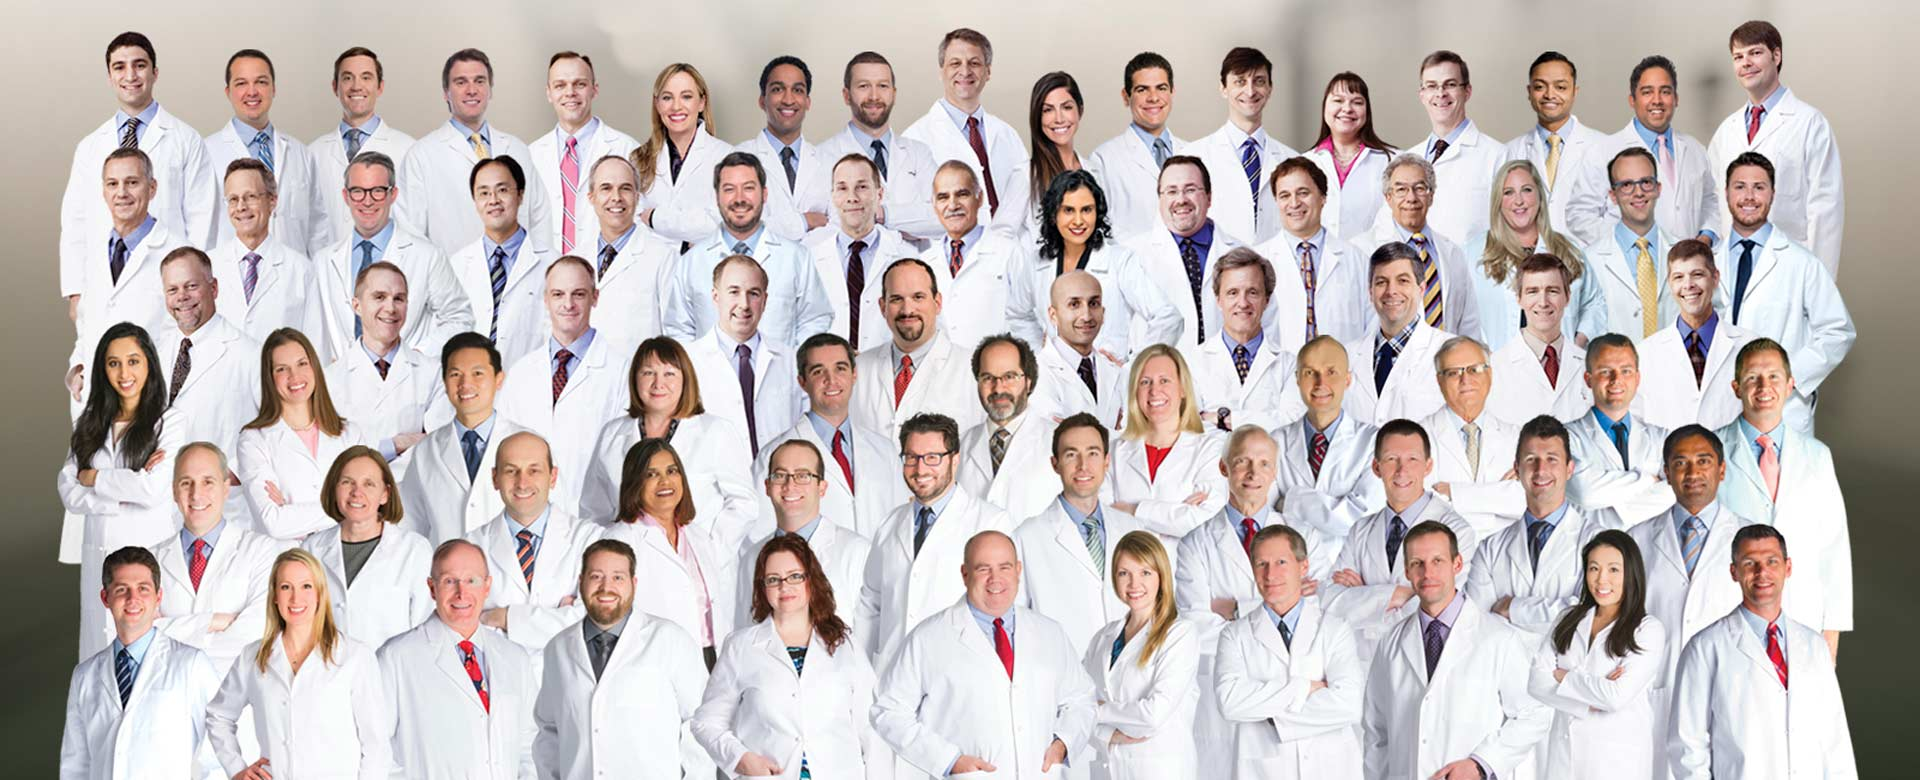 Premier Radiology composite photo of entire group of radiologists